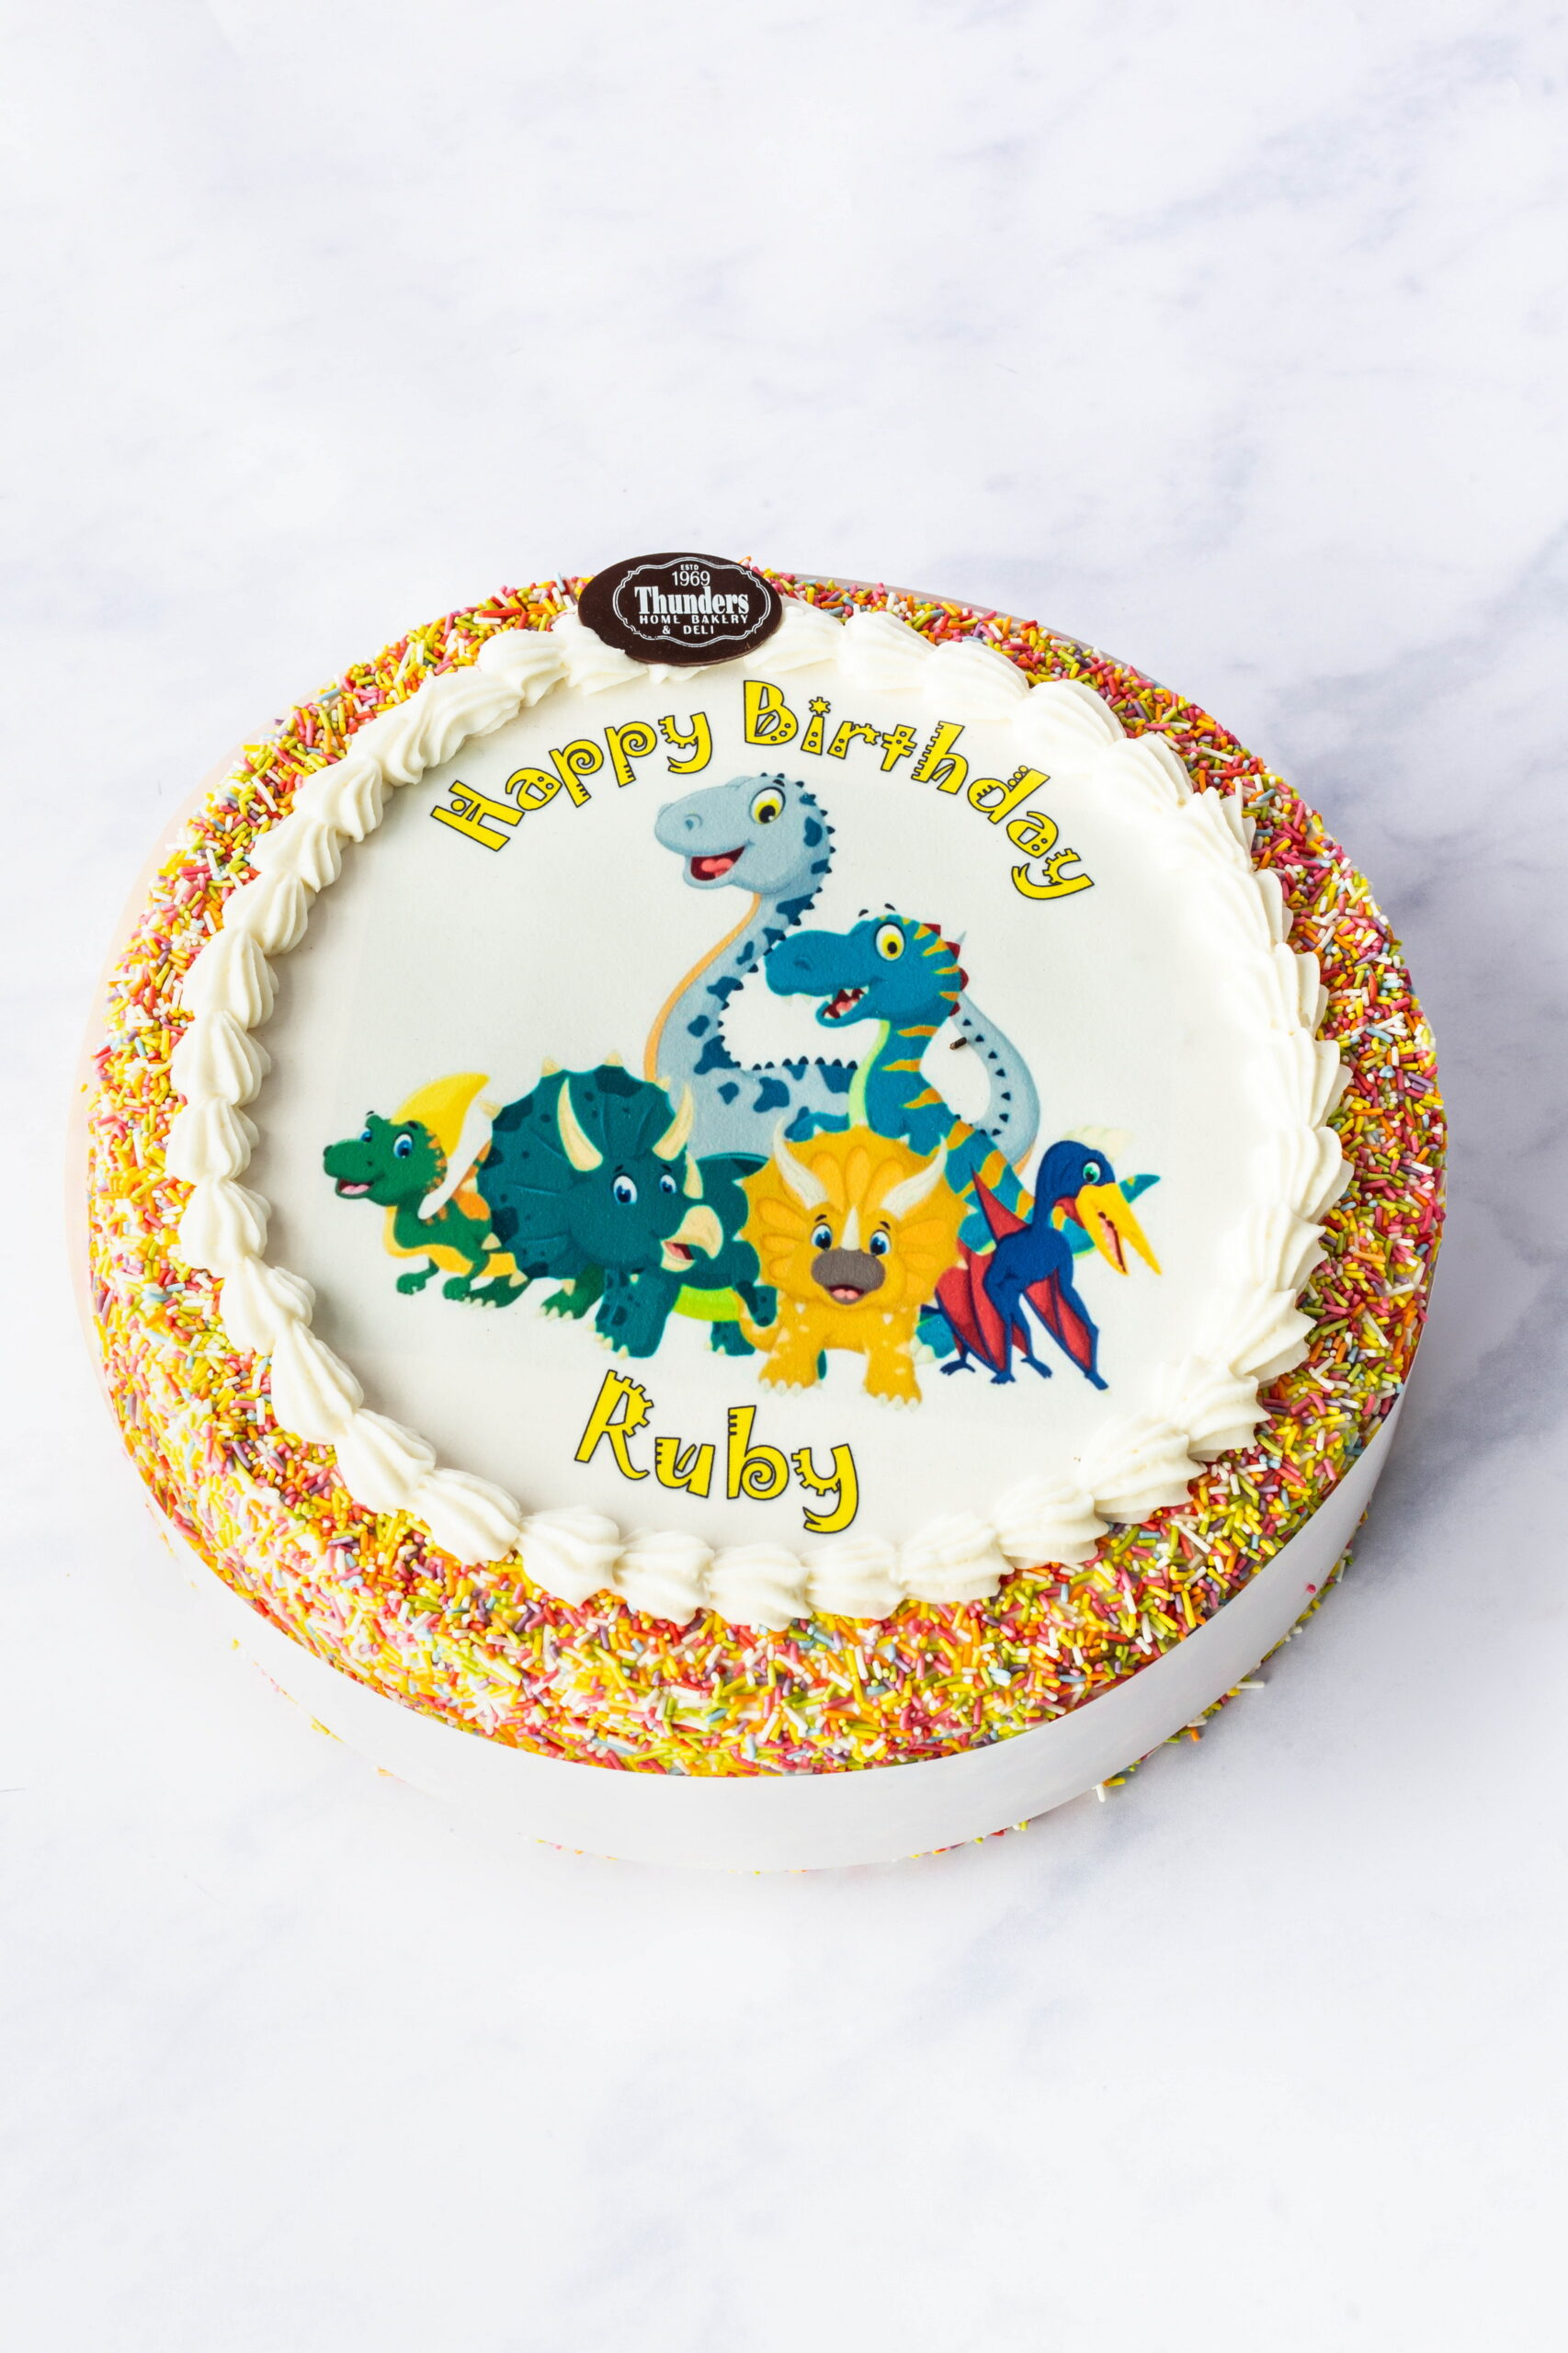 Thunders Picture Cakes